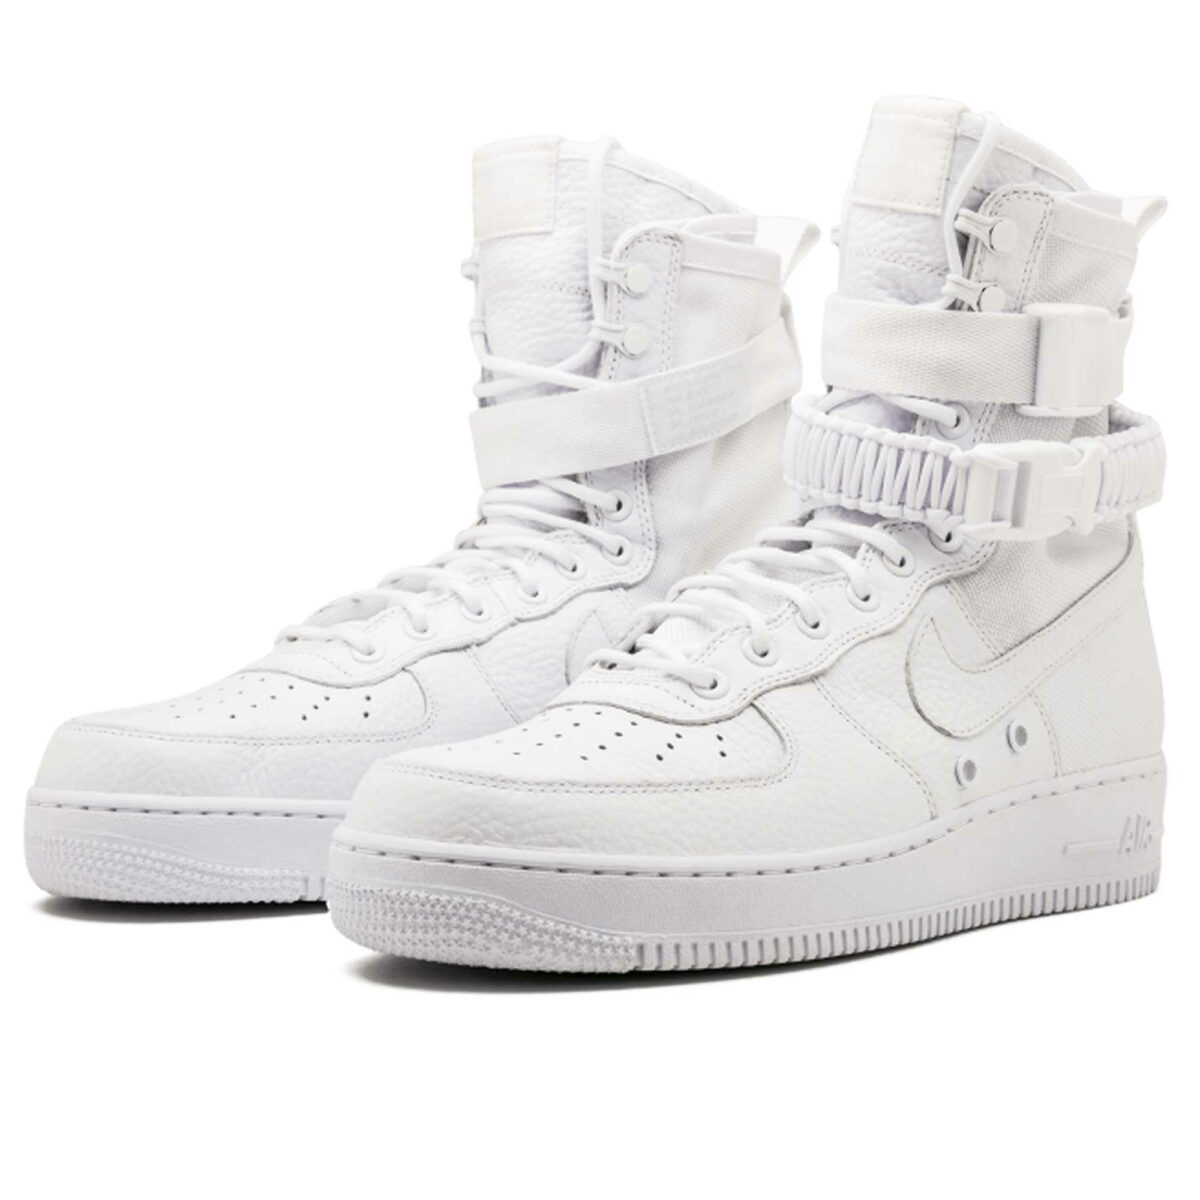 nike sf air force 1 all white 903270_100 купить